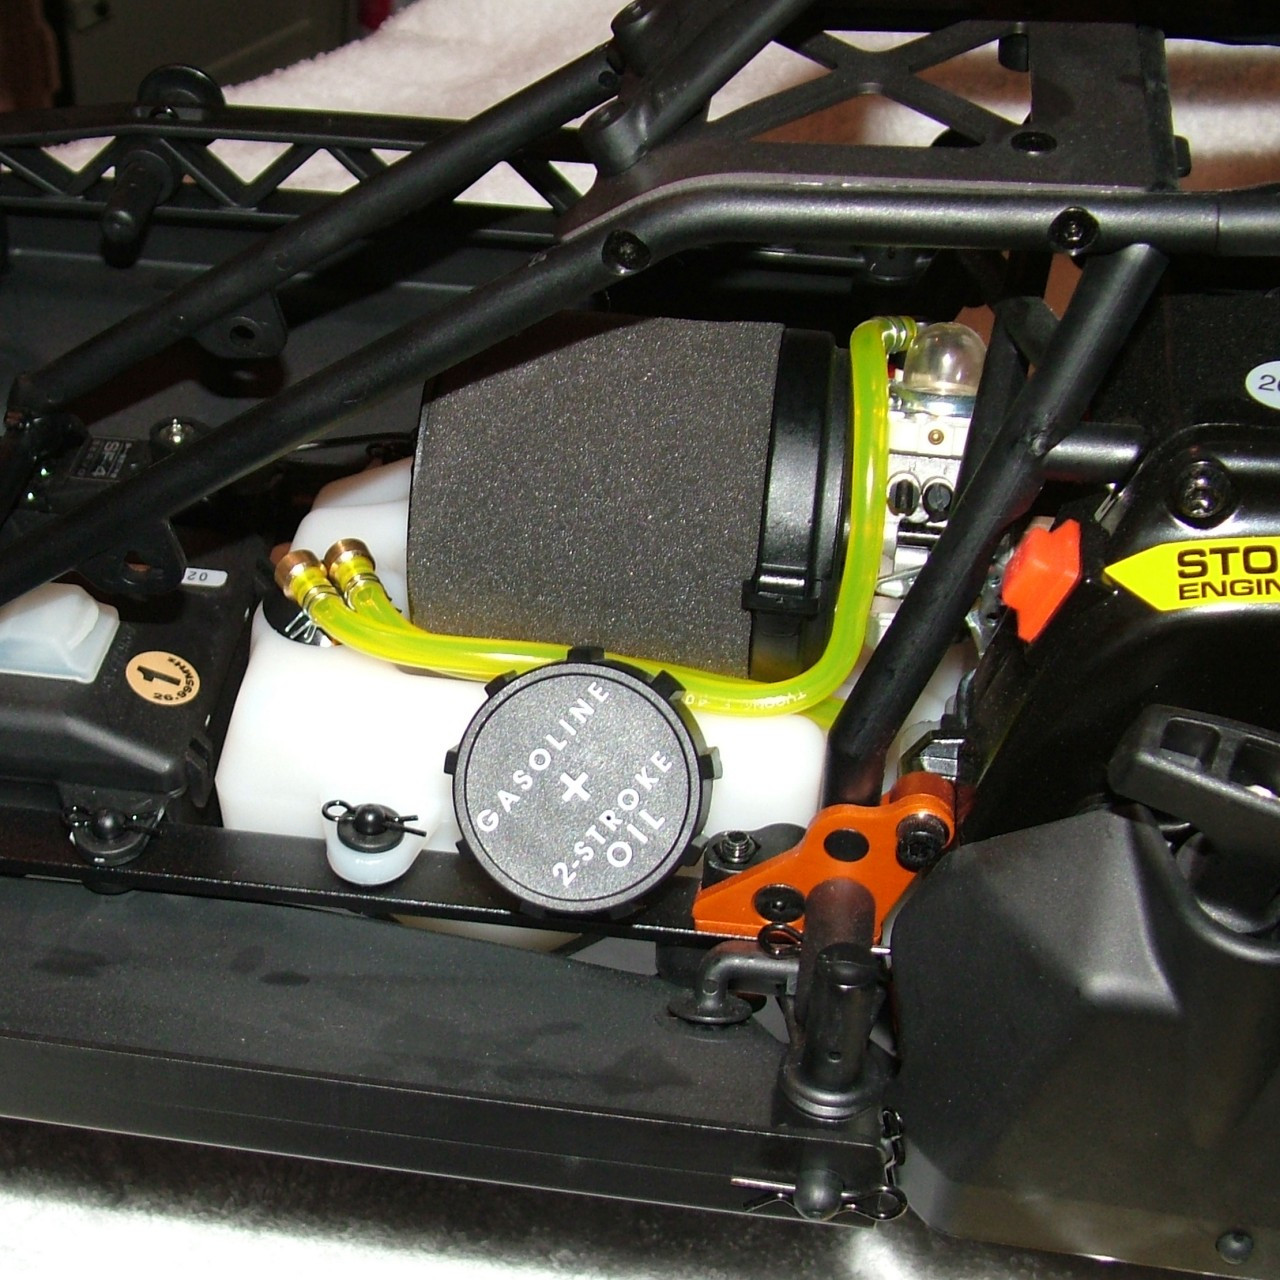 Shown here mounted on an HPI Baja 5T truck.  You can see the clean routing of the fuel lines.